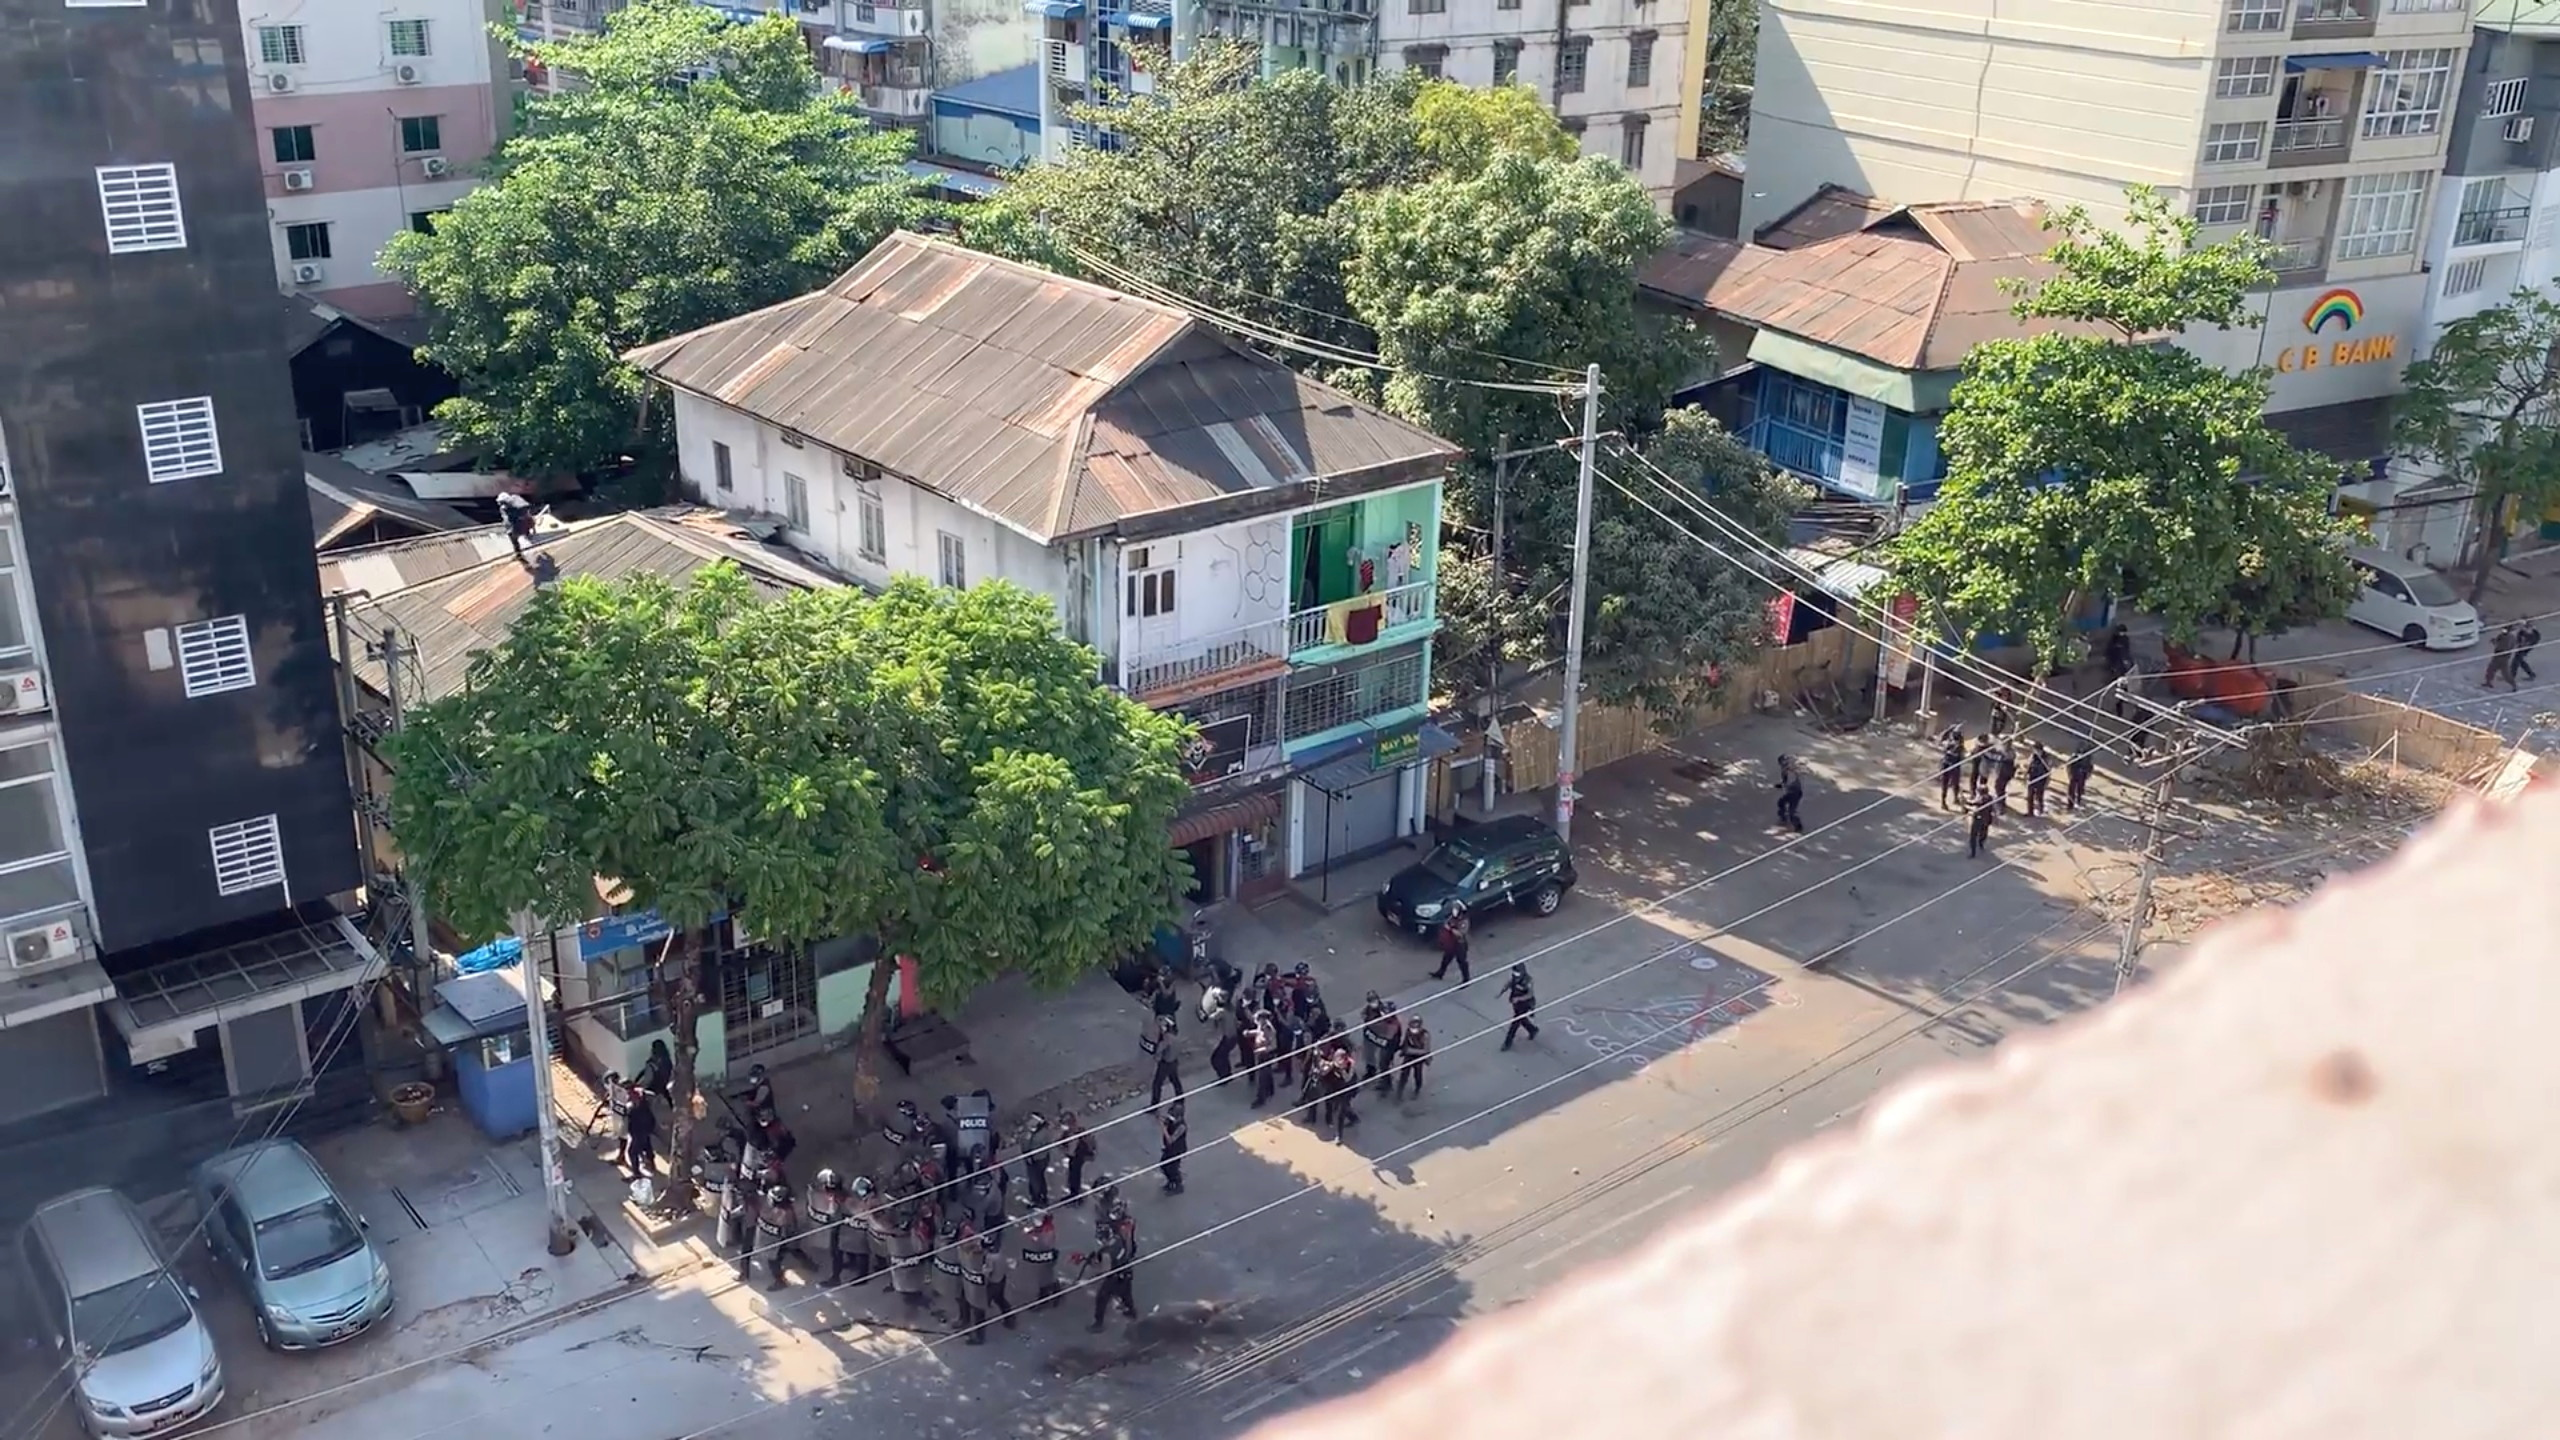 A protester is seen on the roof of a building as he throws objects at police, during a protest in Yangon, Myanmar, March 4, 2021, in this still image taken from a video.  Bangkoksighseeing Facebook/via REUTERS